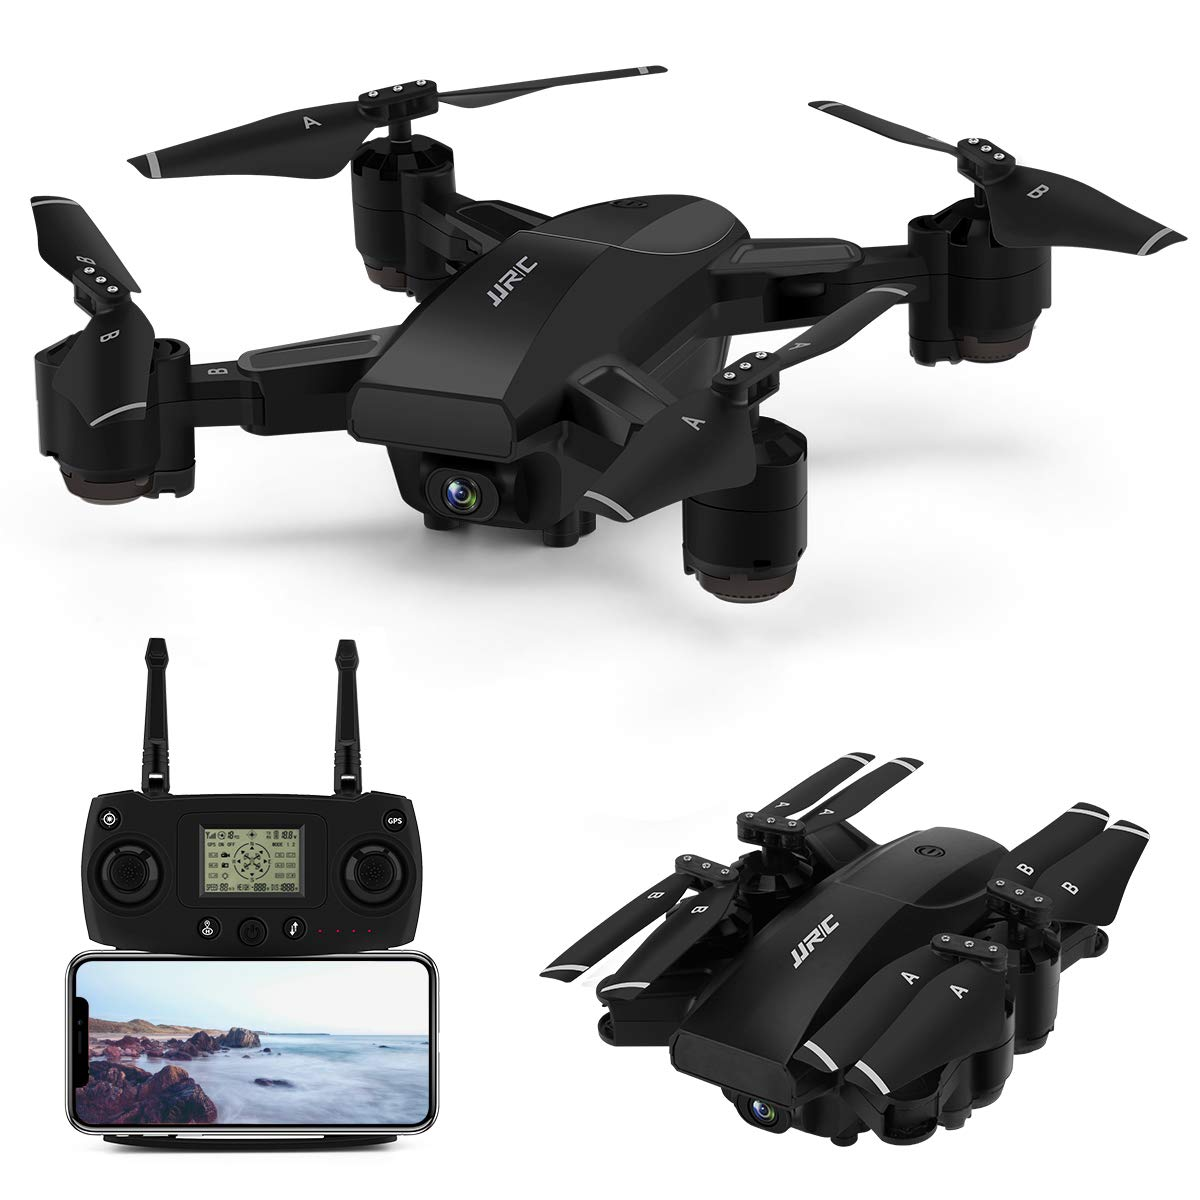 GPS Drone with 1080P HD Camera for Adults,JJRC Pride 5G WiFi FPV Live Video Rc Foldable Drone with 30mins(15+15) Long Flight Time,Rc Quadcopter with Smart Return to Home,Follow me,Altitude Hold by JJRC